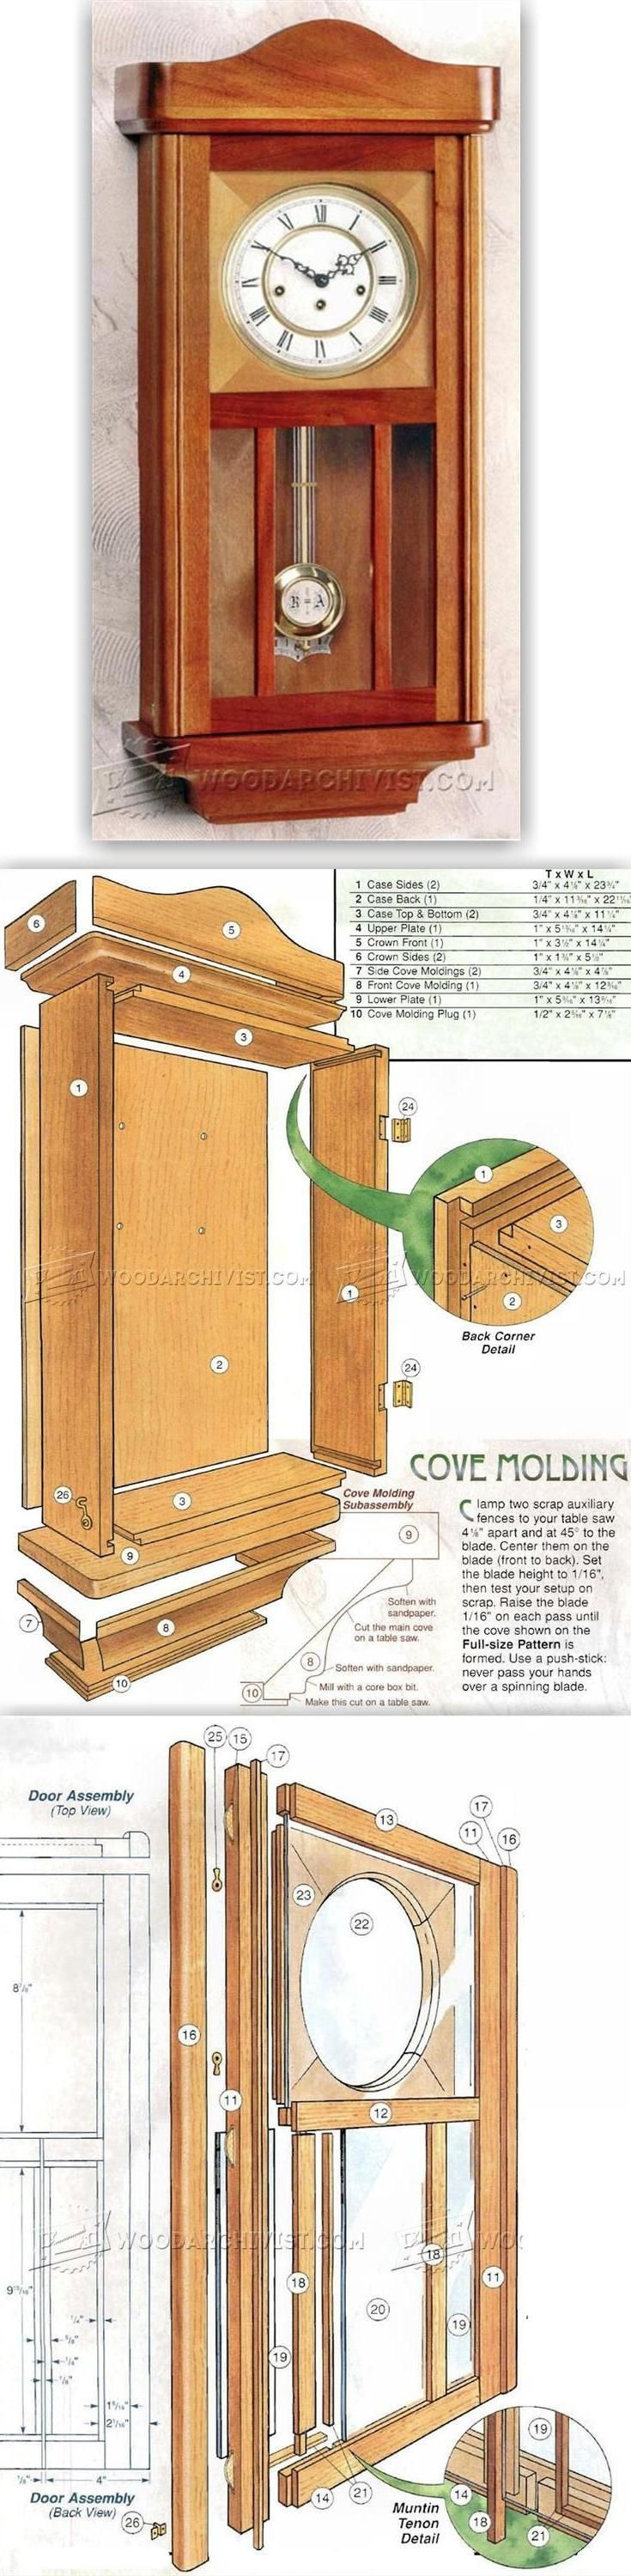 Wall Clock Plans Woodworking Plans And Projects Woodarchivist